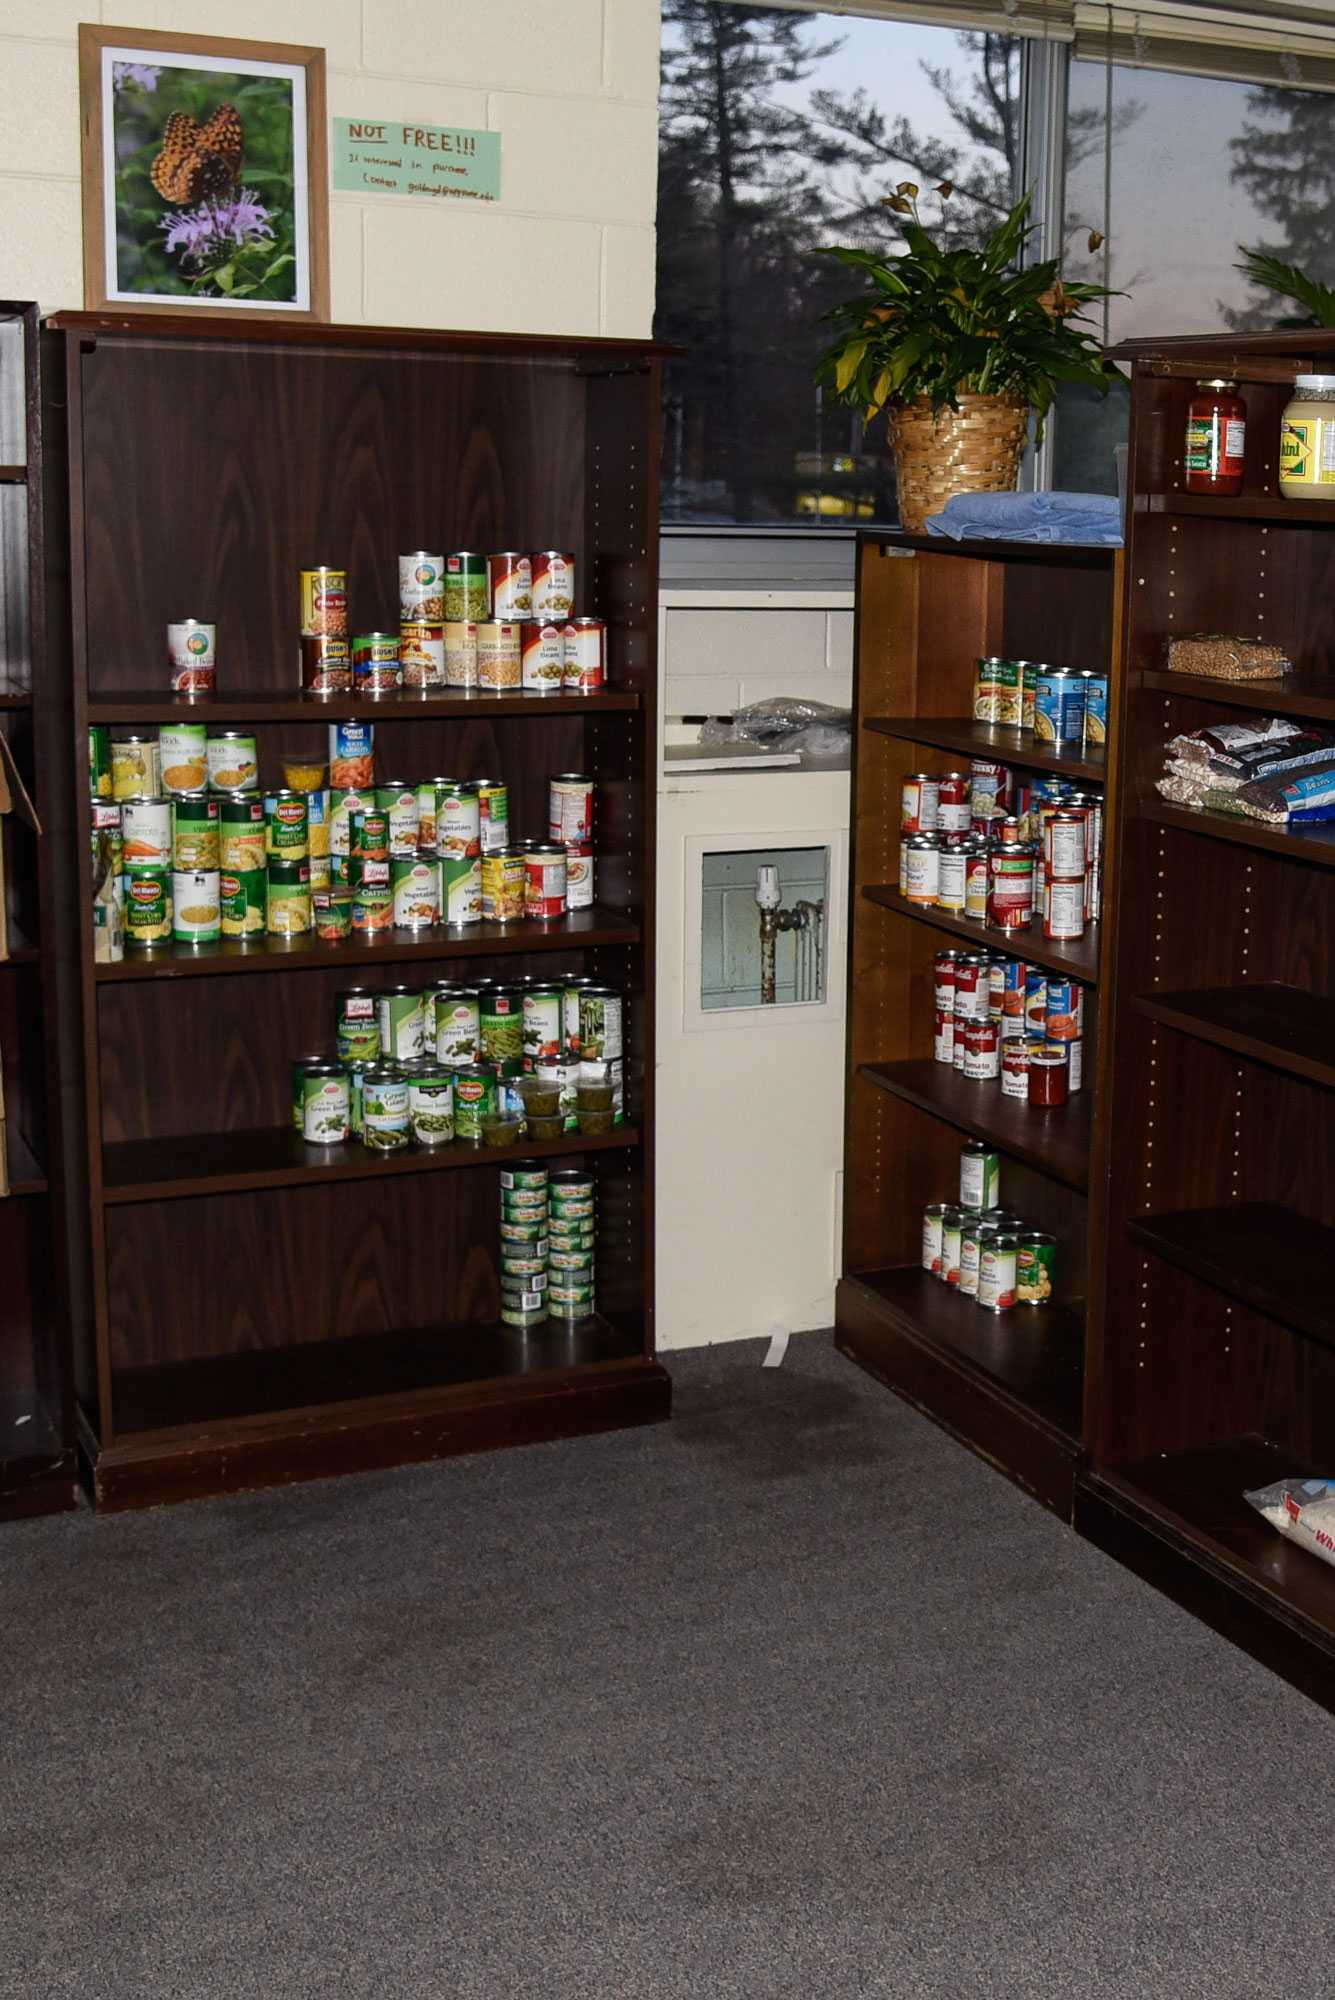 The Office of Sustainability's food pantry. The pantry is located on campus in the basement of East Hall.